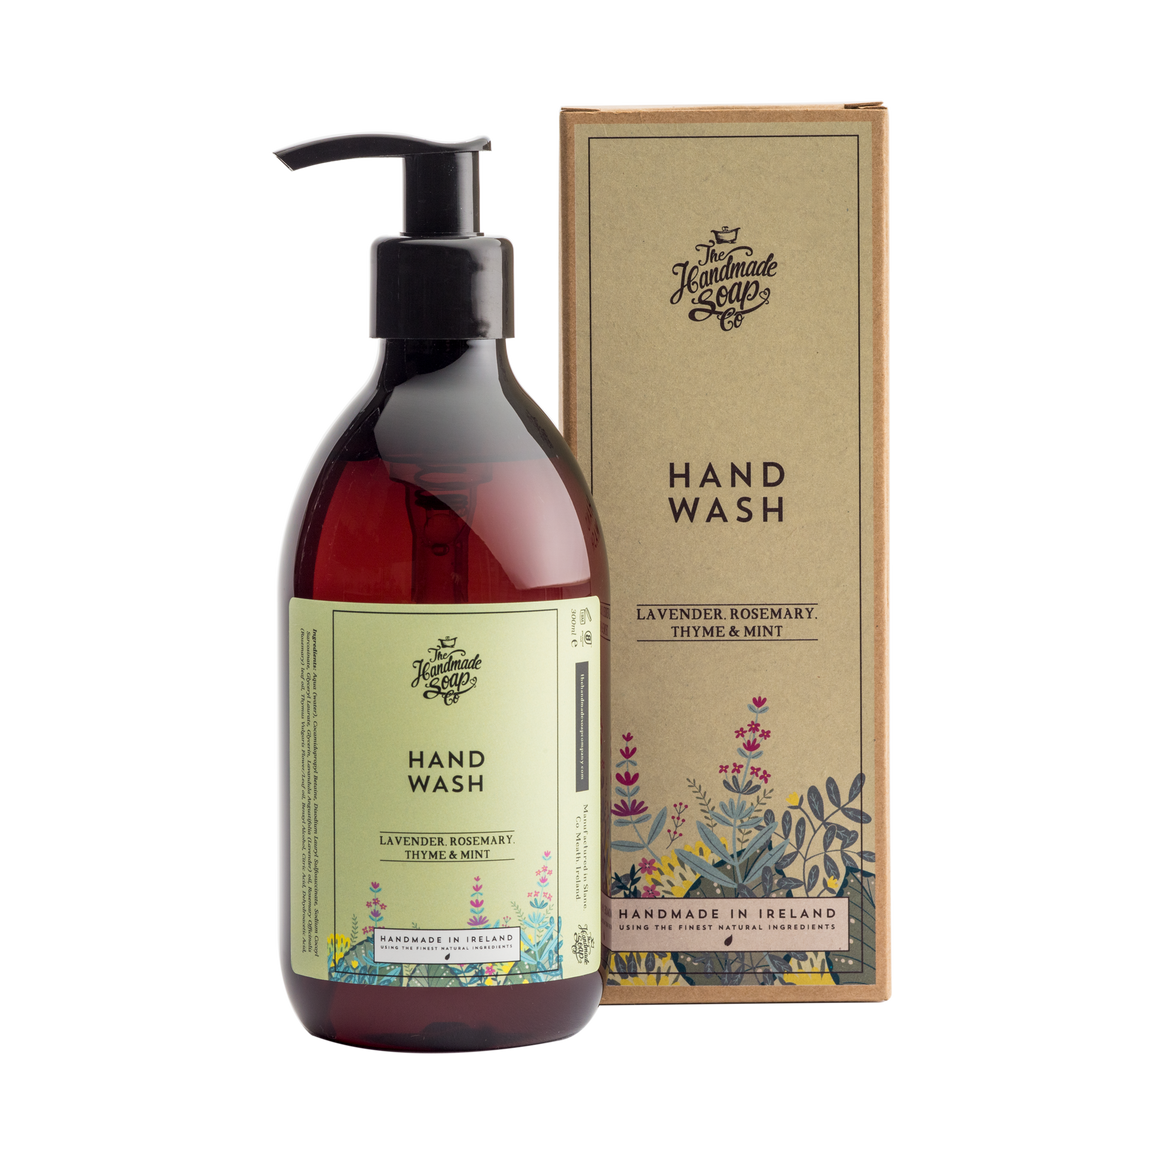 Handmade Soap Co. Lavender, Rosemary, Thyme & Mint Imported Irish Hand Wash